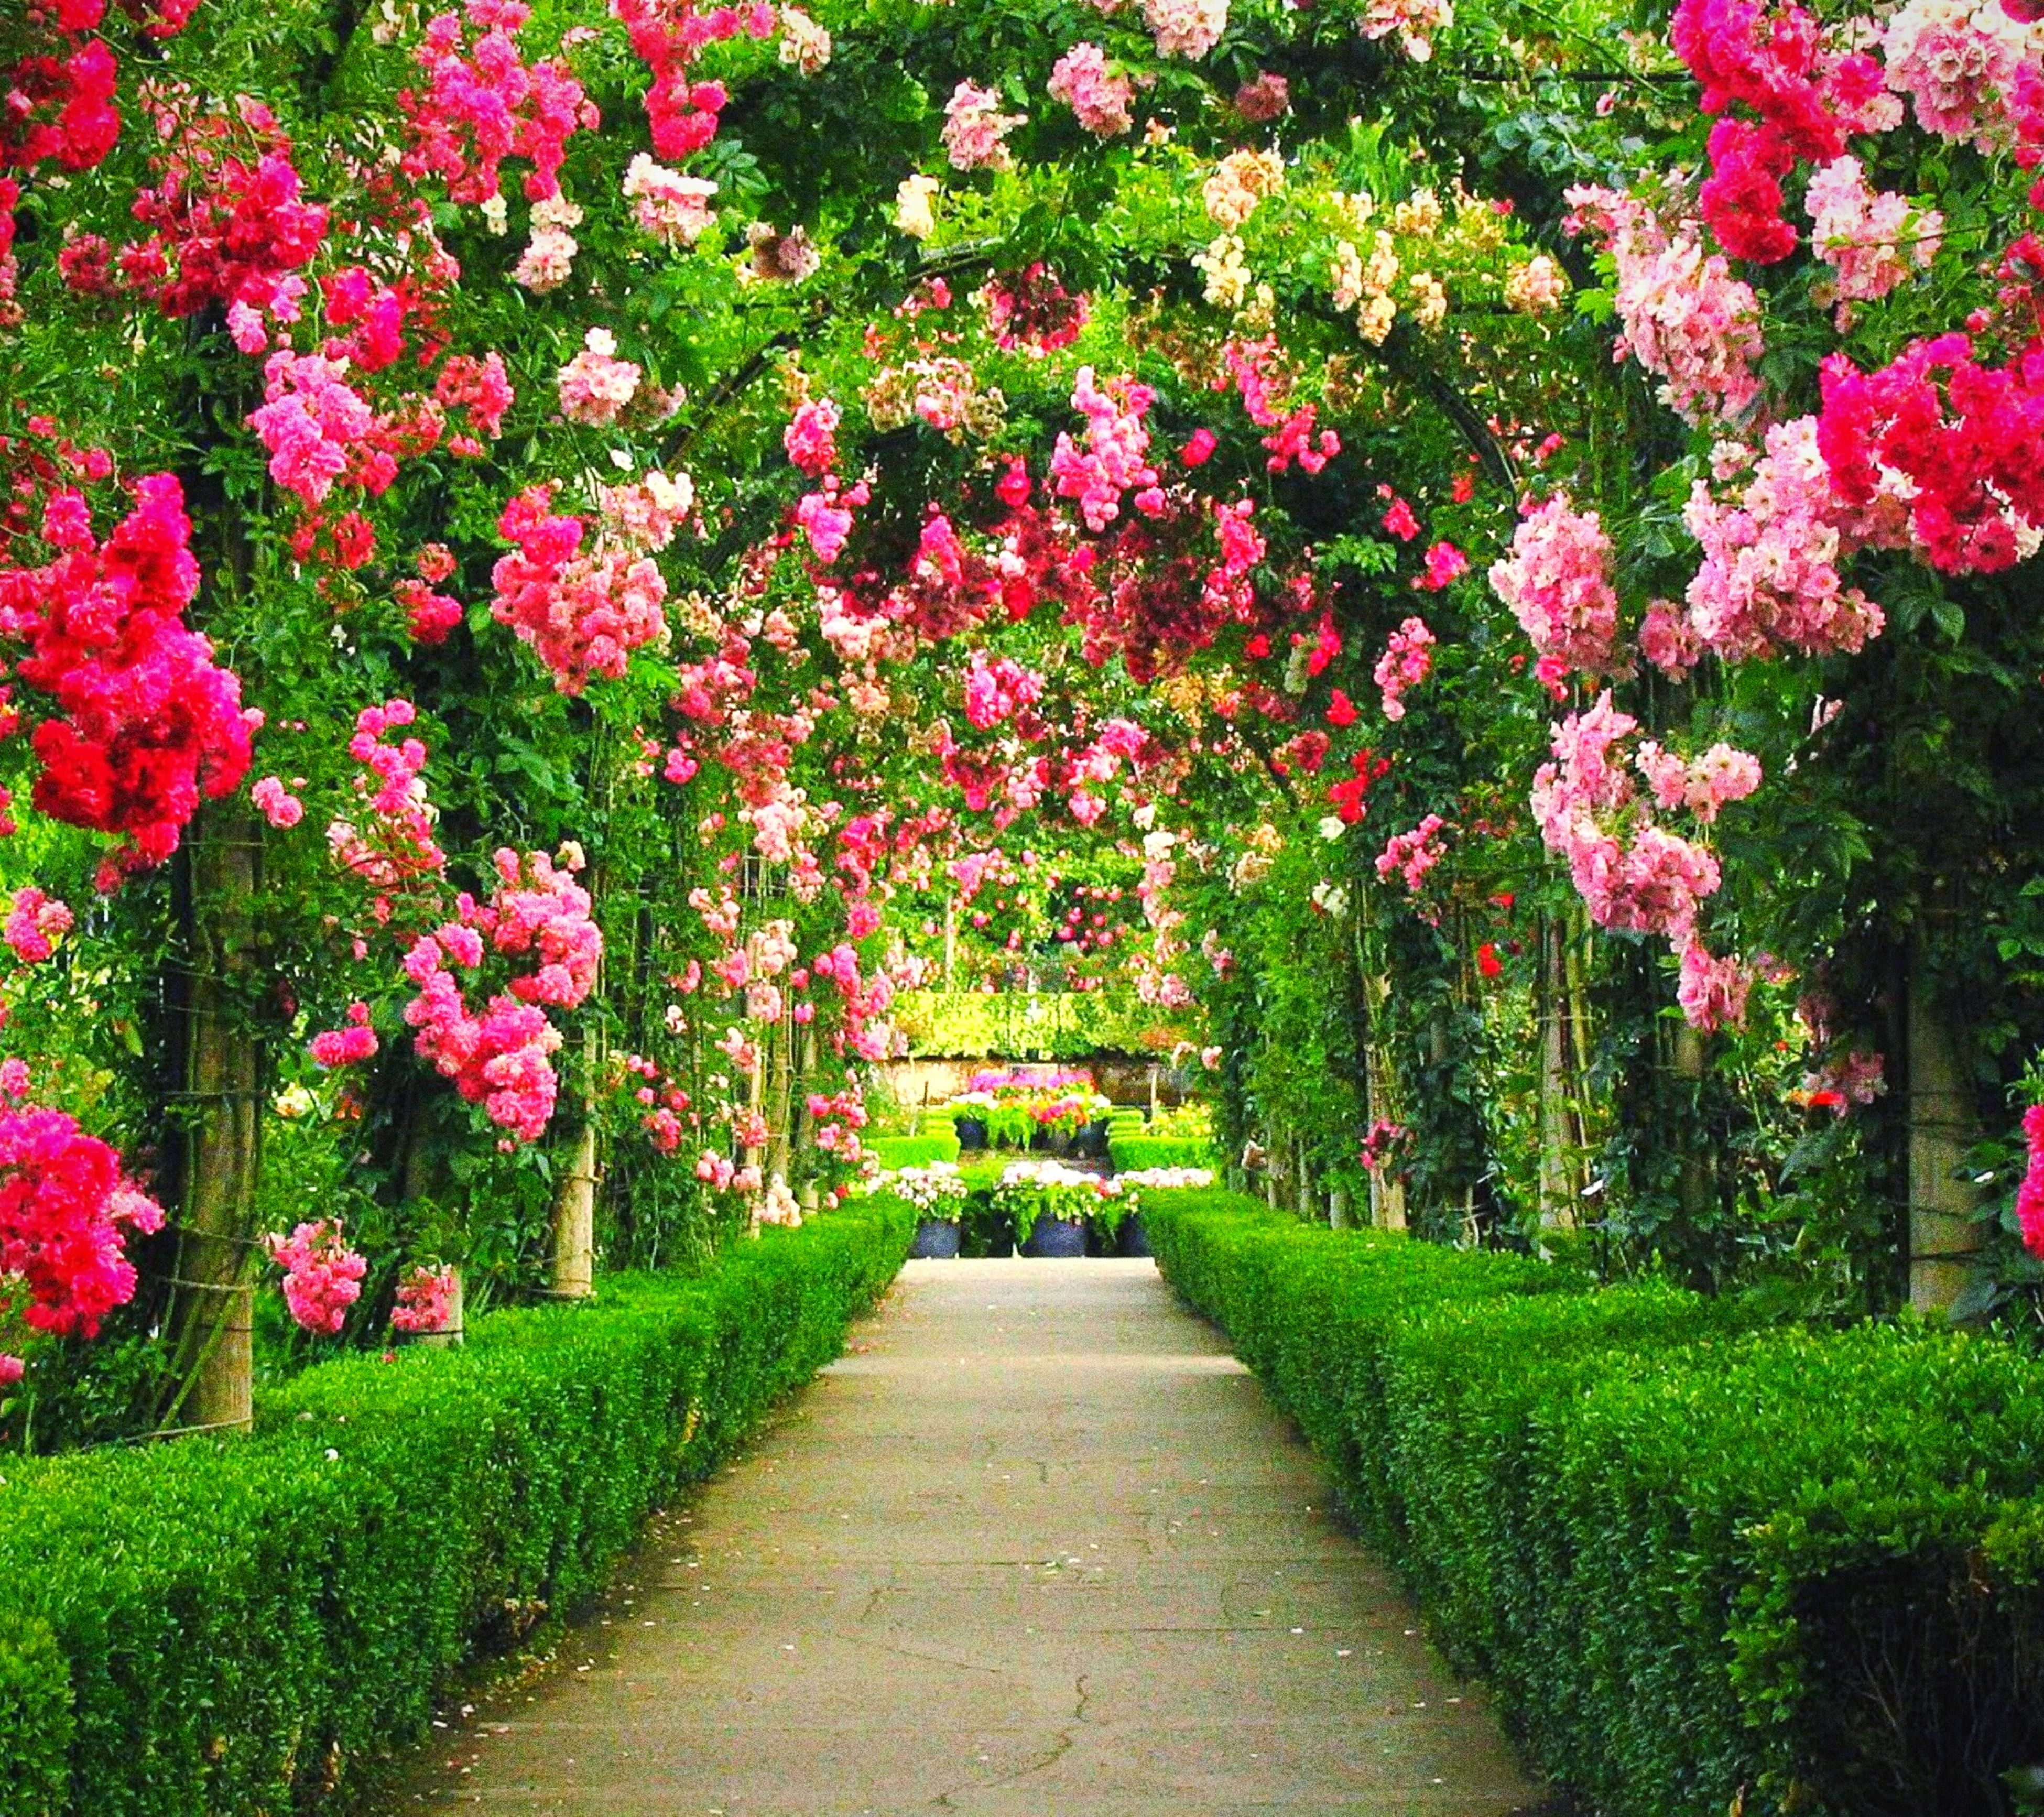 flower, the way forward, tree, growth, beauty in nature, nature, freshness, park - man made space, footpath, green color, tranquility, grass, plant, diminishing perspective, walkway, tranquil scene, pathway, lush foliage, day, blossom